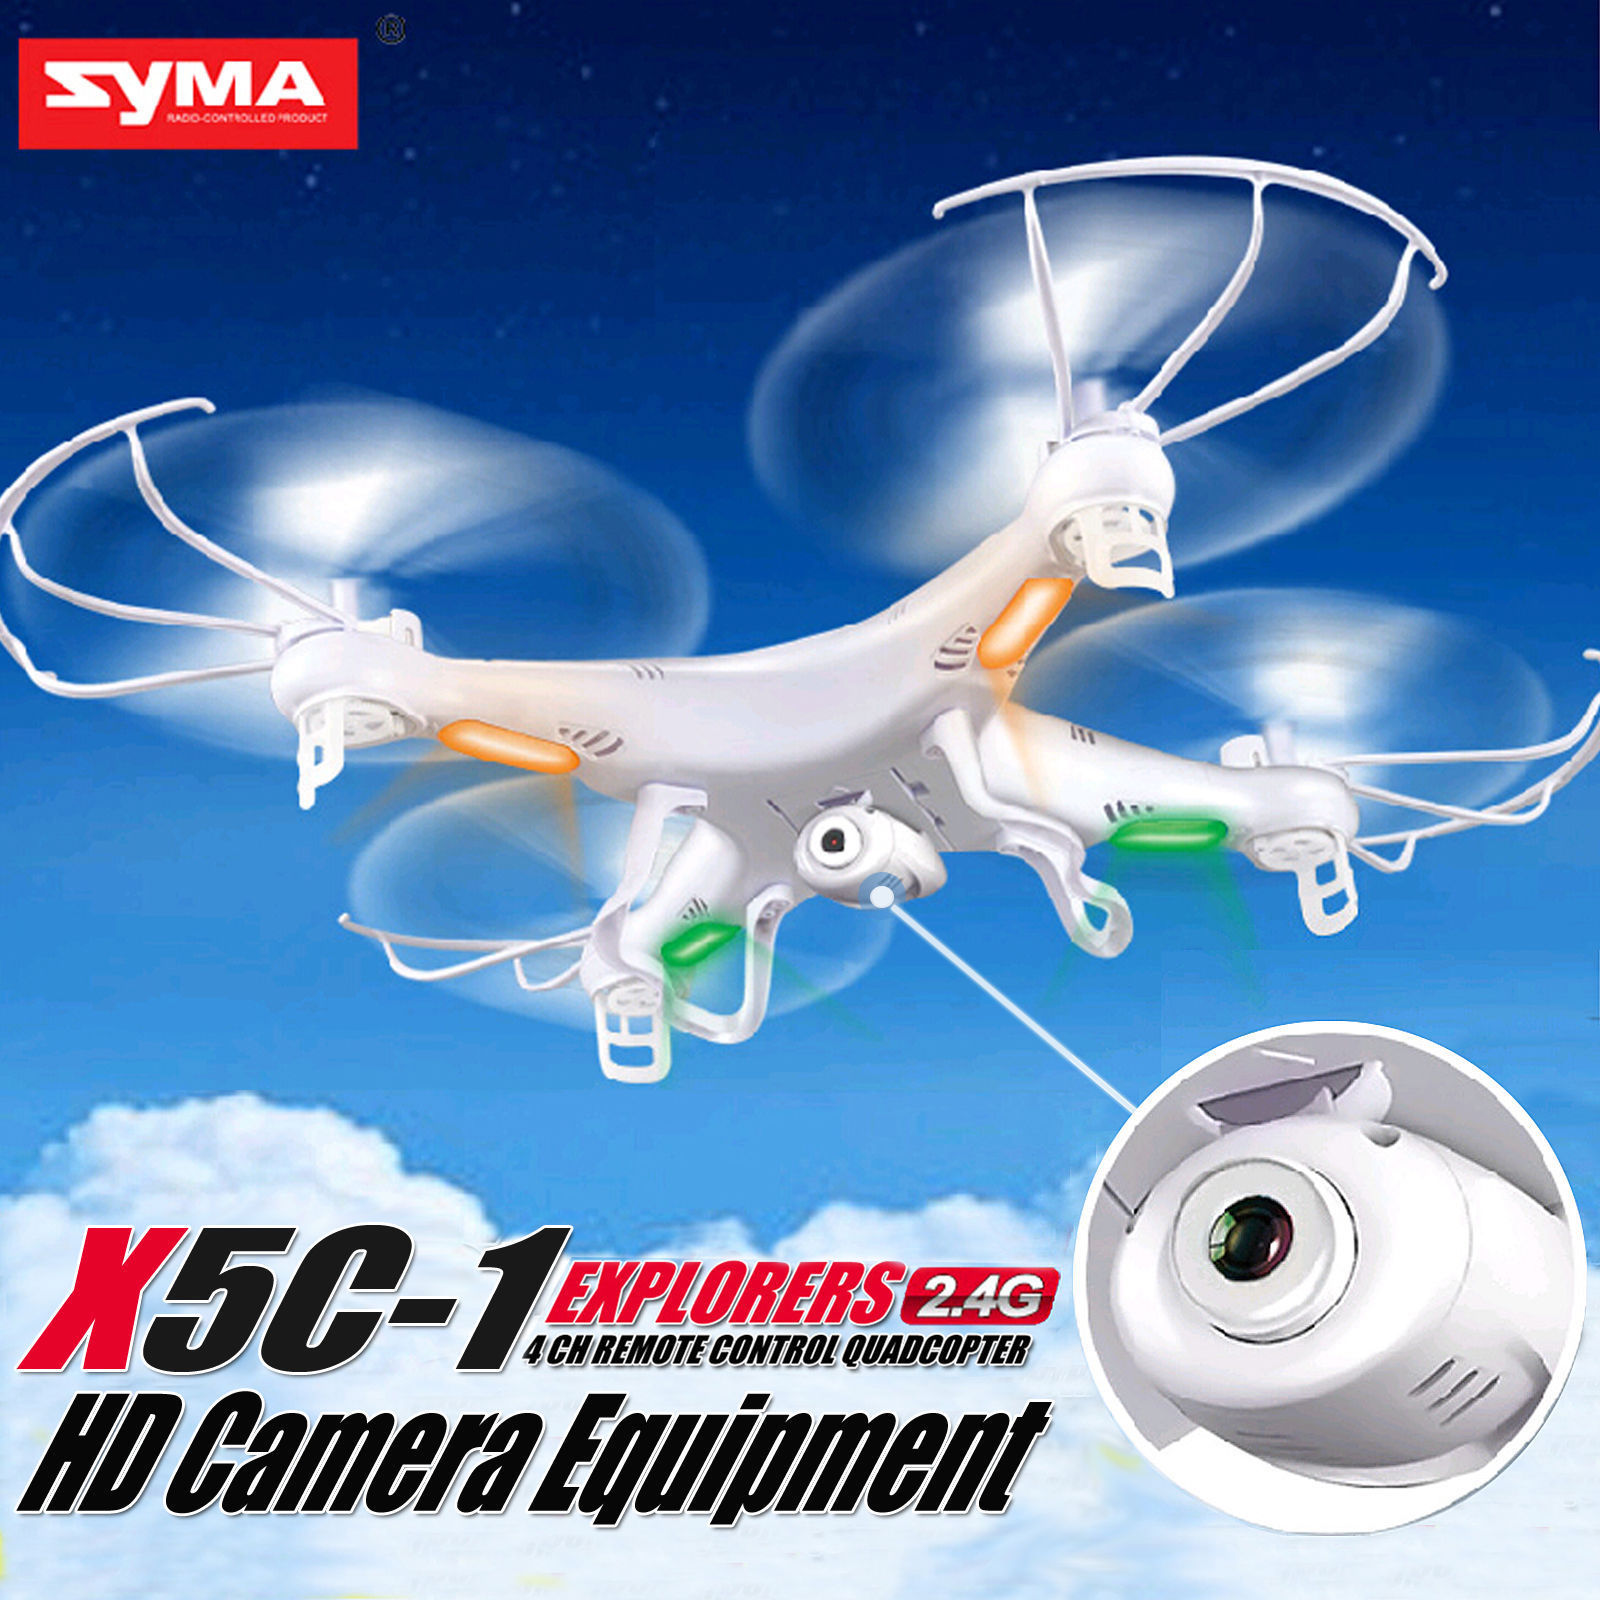 Syma X5C-1 Explorers 2.4Ghz 4CH 6-Axis Gyro RC Quadcopter Drone w  HD Camera by OUTAD